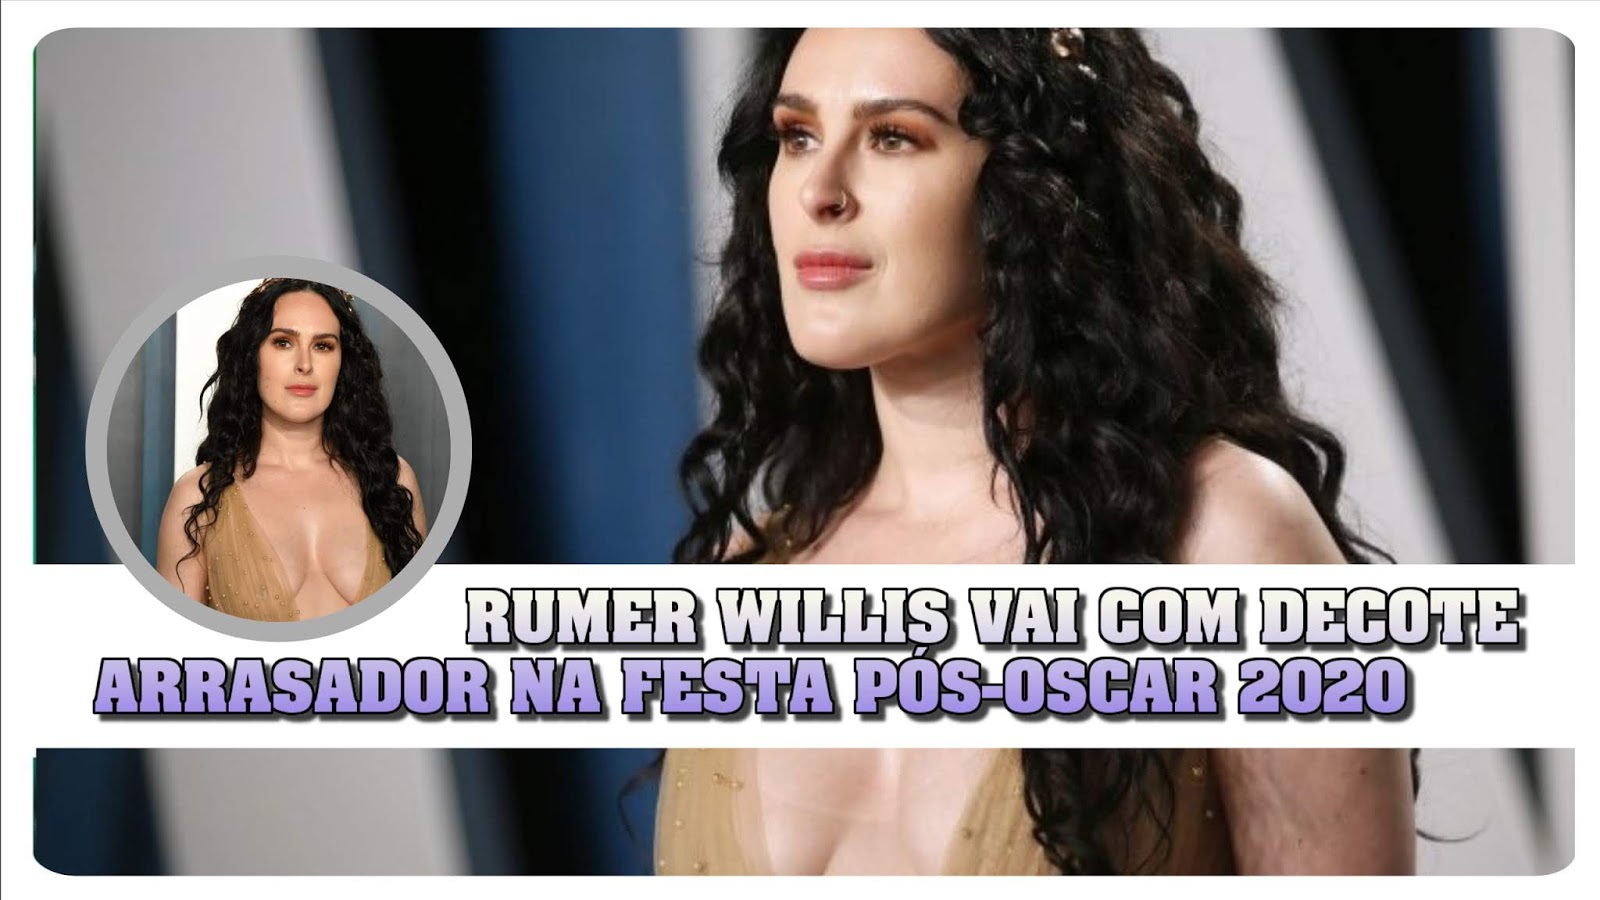 rumer-willis-vai-com-decote-arrasador